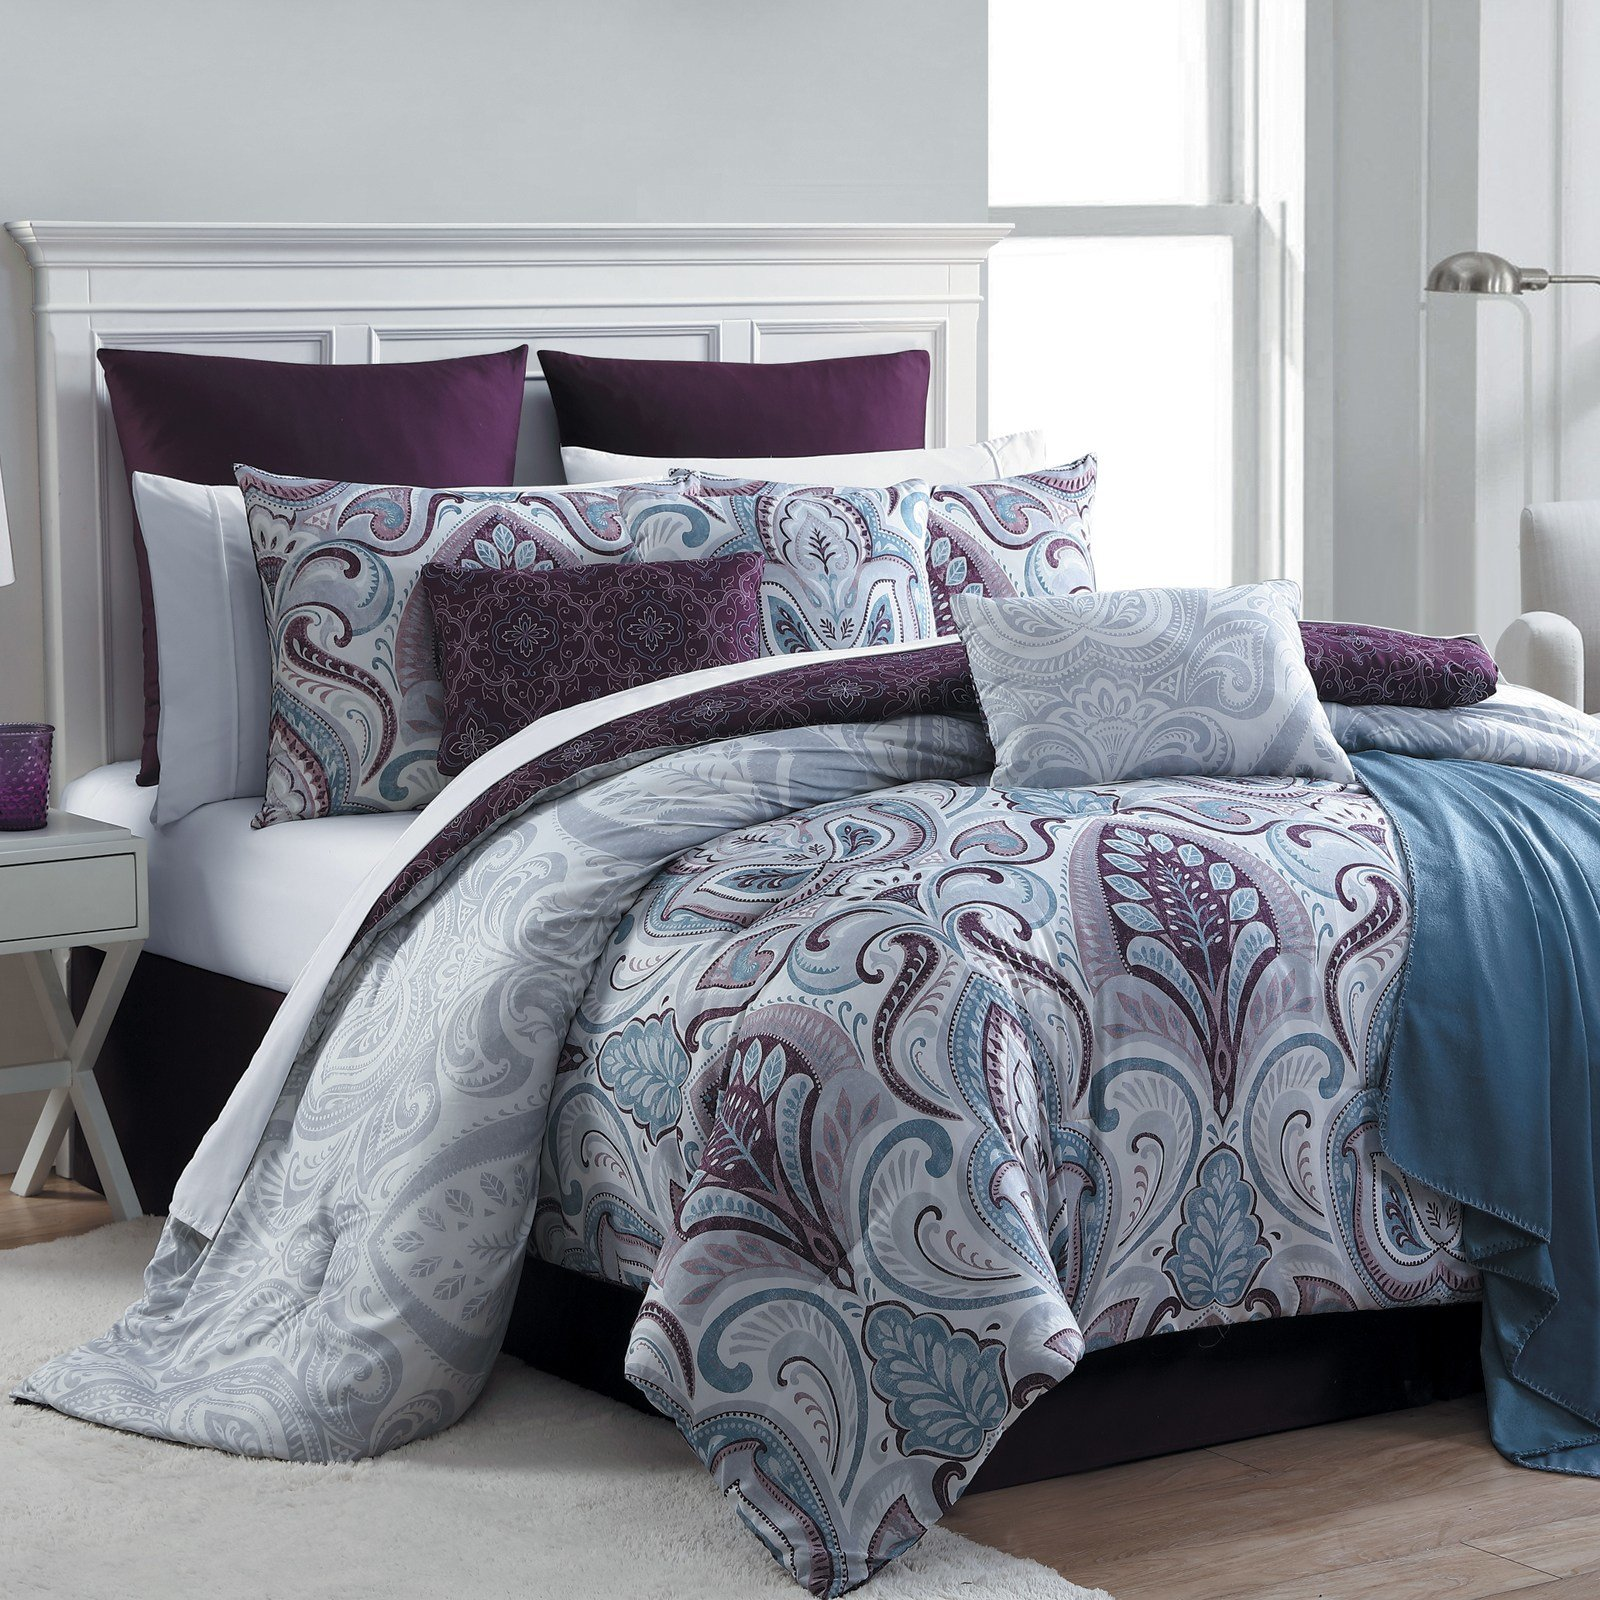 Best Essential Home 16 Piece Complete Bed Set Bedrose Plum With Pictures